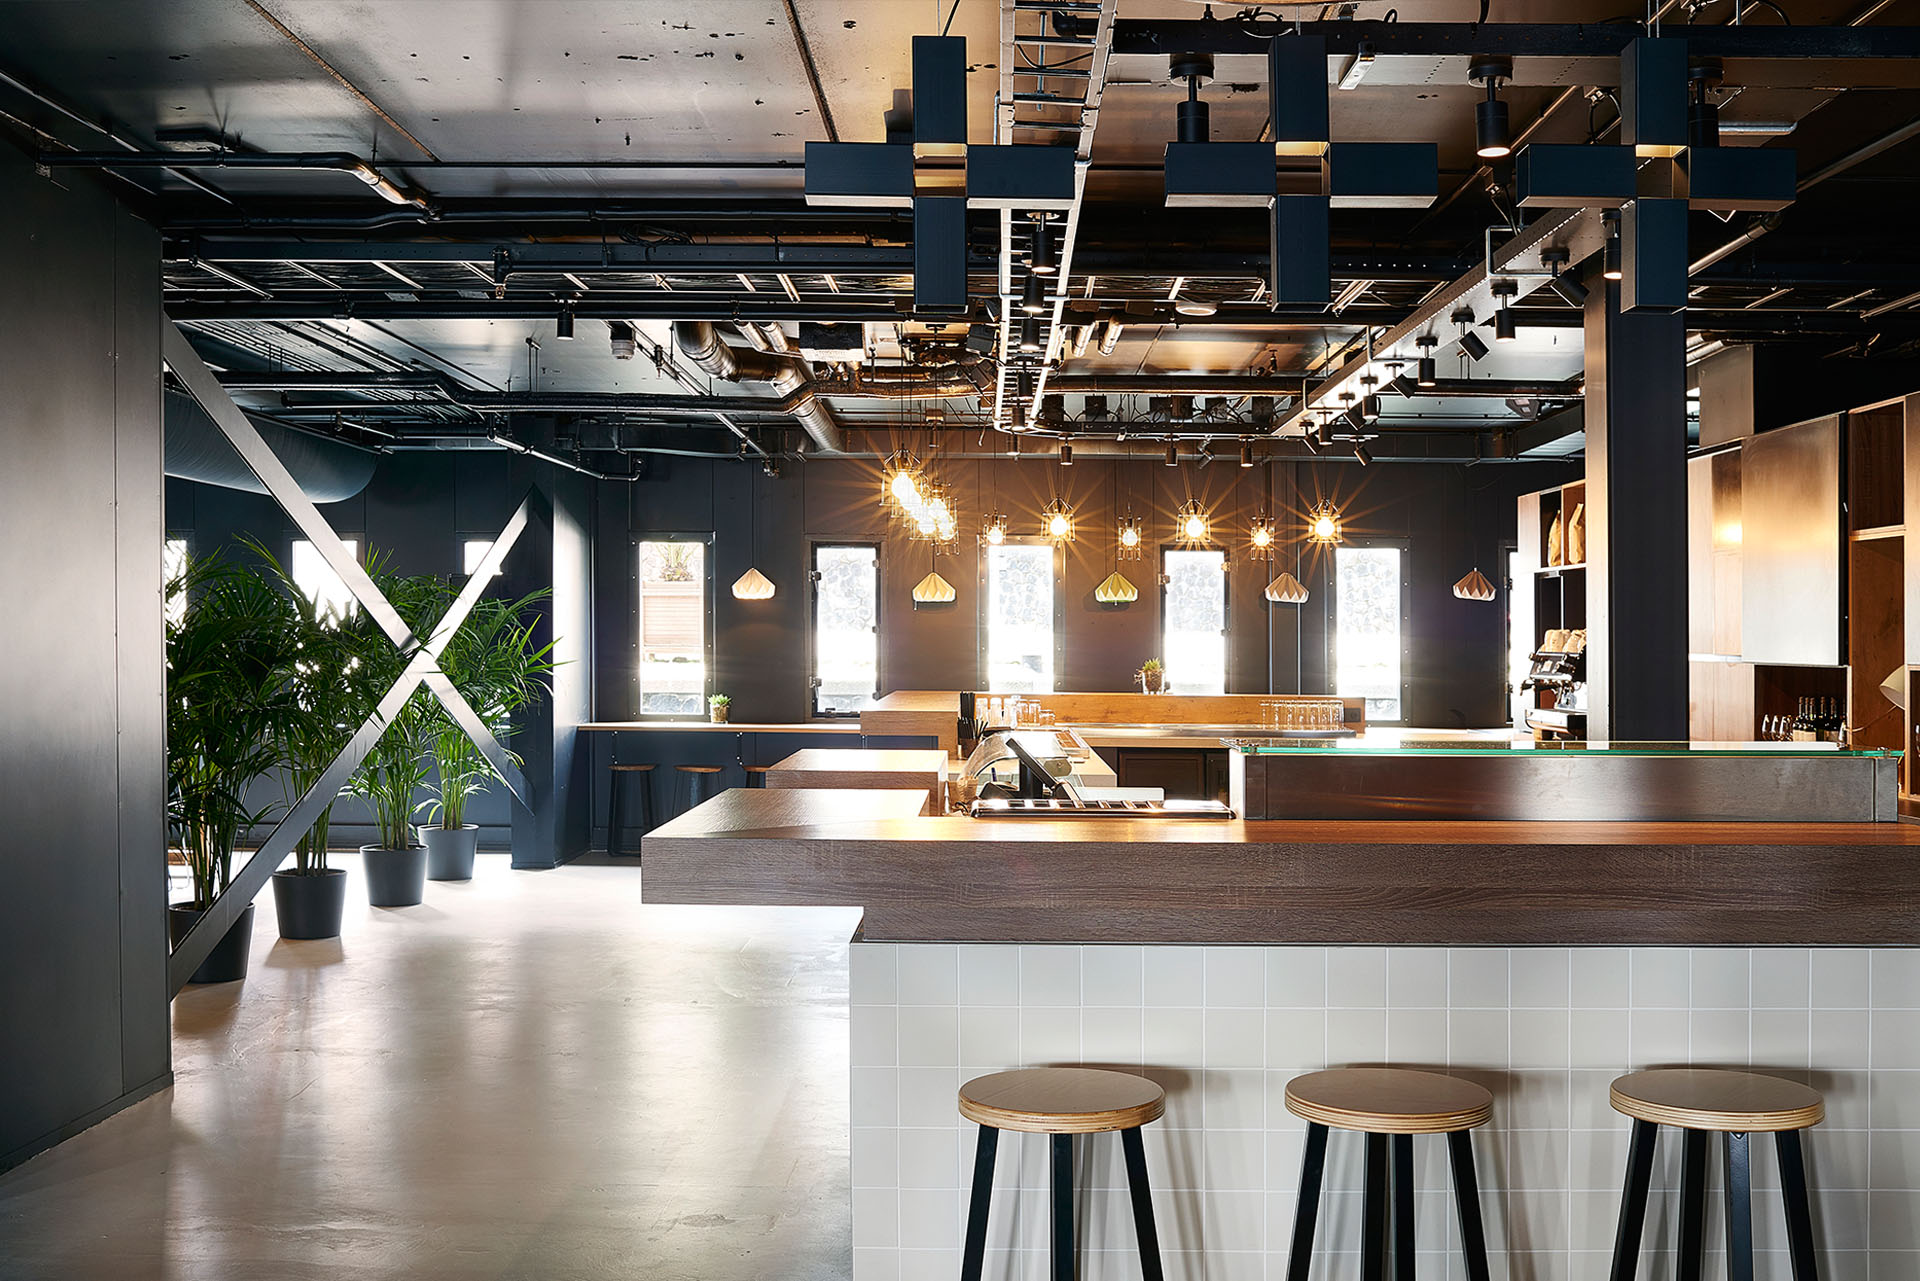 Bar / The multi-functional 'day and night' layout of the bar focusses all food & beverage related activities in one area. This creates a social buzz from breakfast till late nights drinks that connects guests and staff.